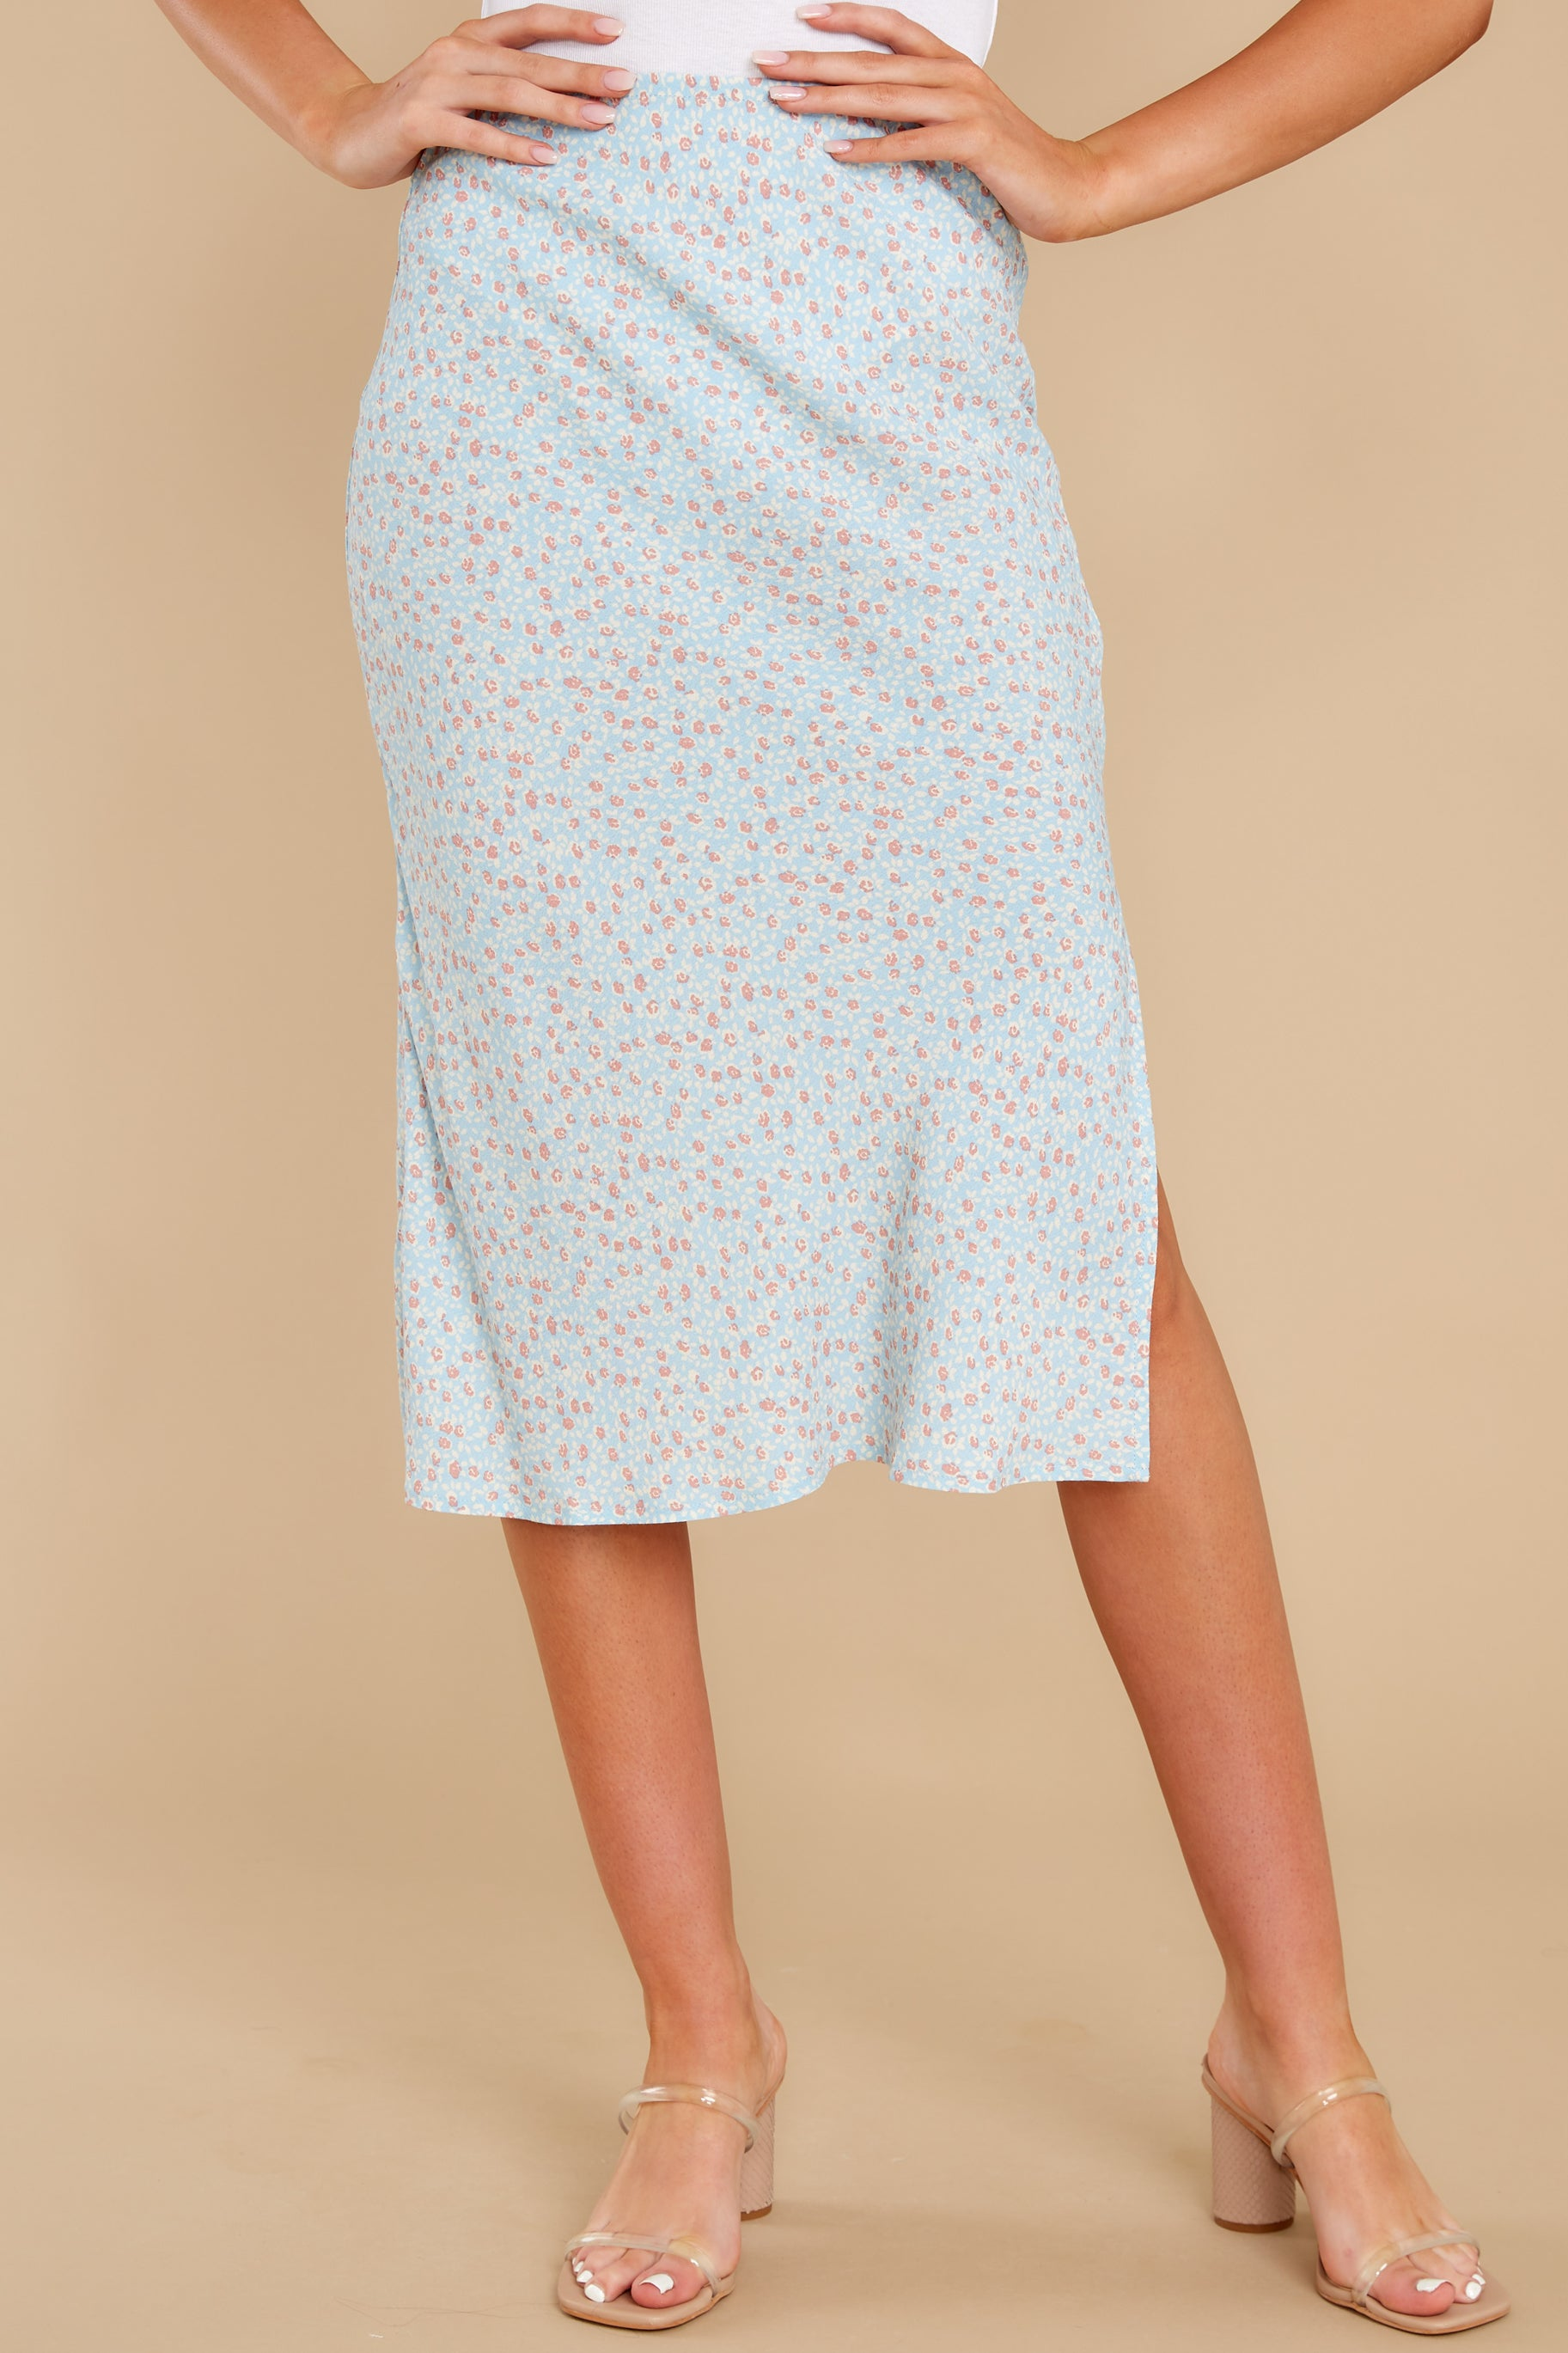 5 Adore It Sky Blue Floral Print Skirt at reddress.com